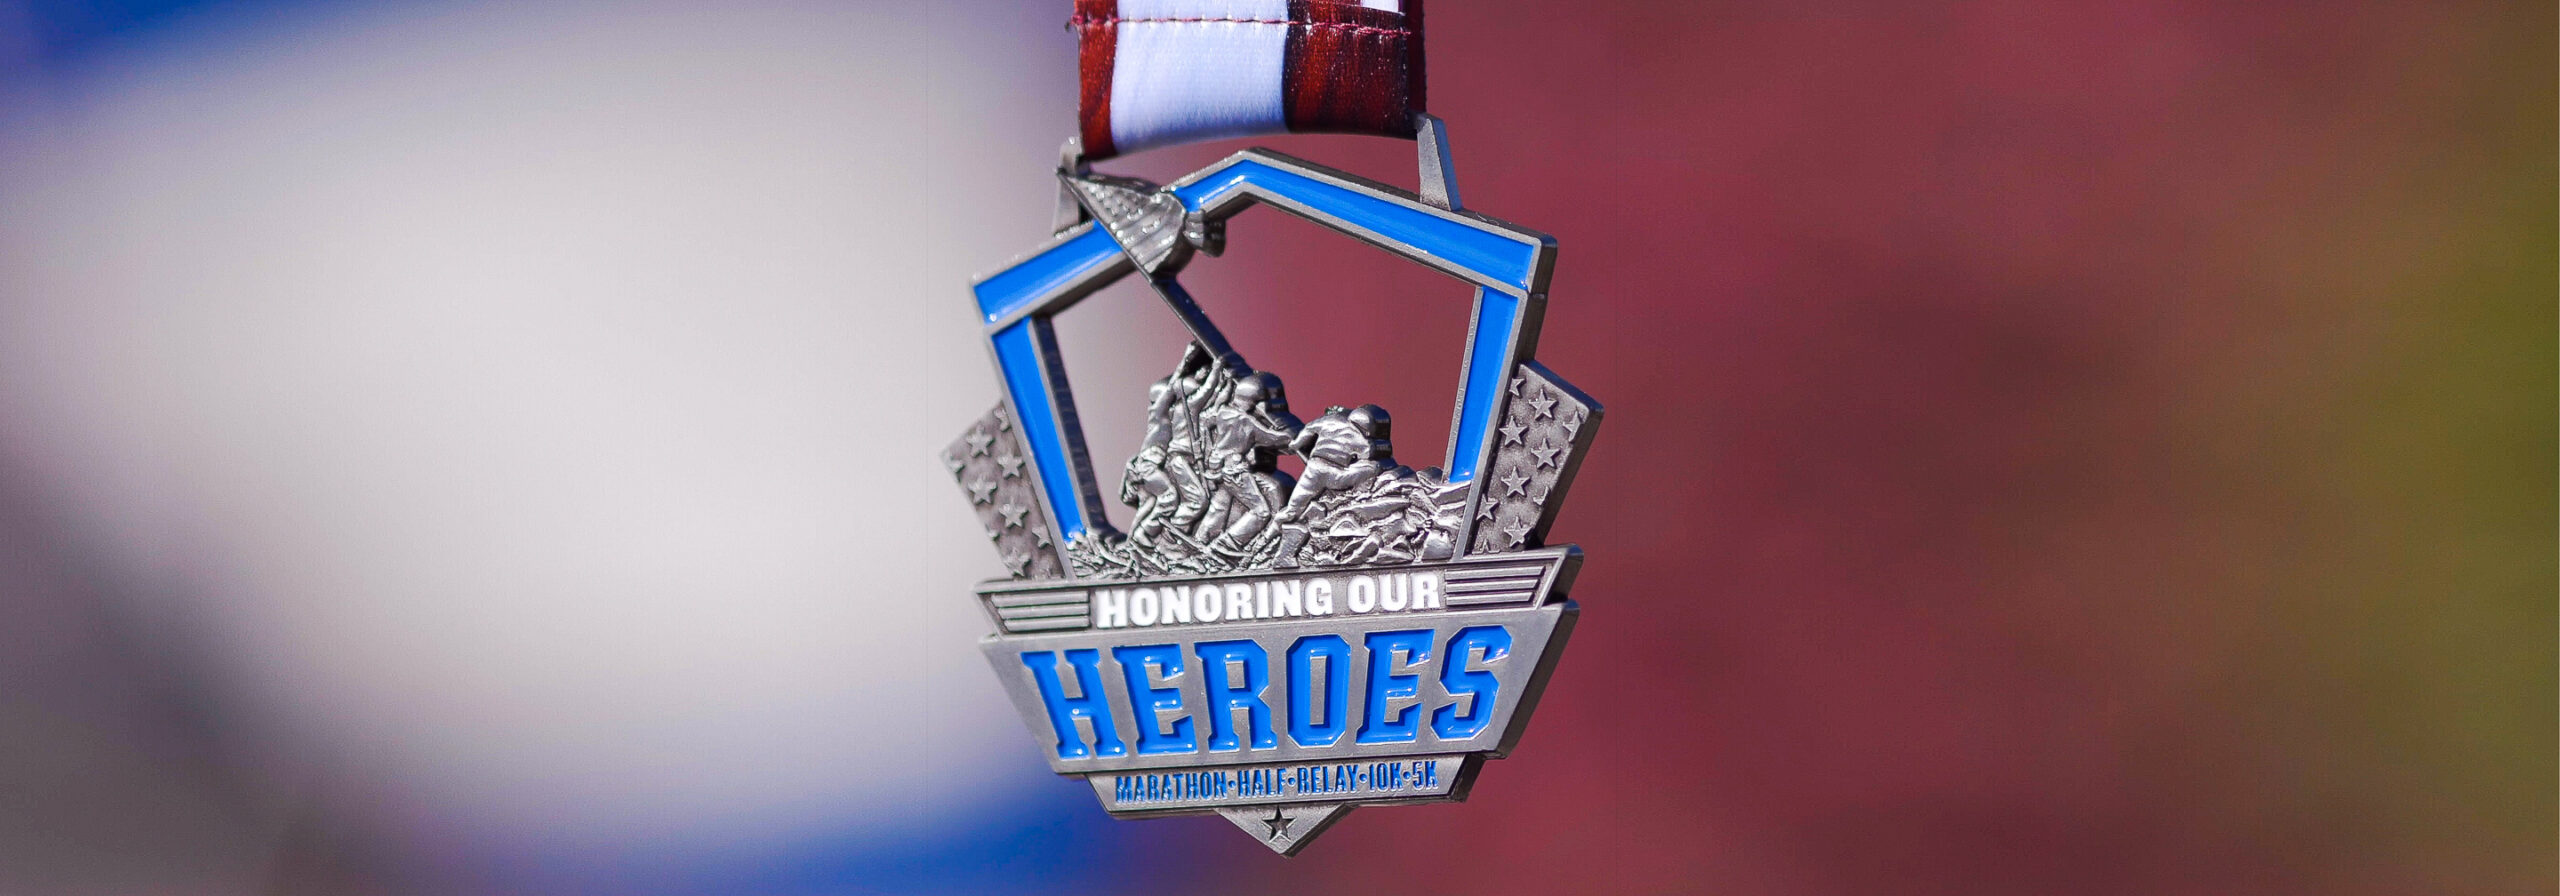 Honoring Our Heroes Marathon Cover Photo Medal